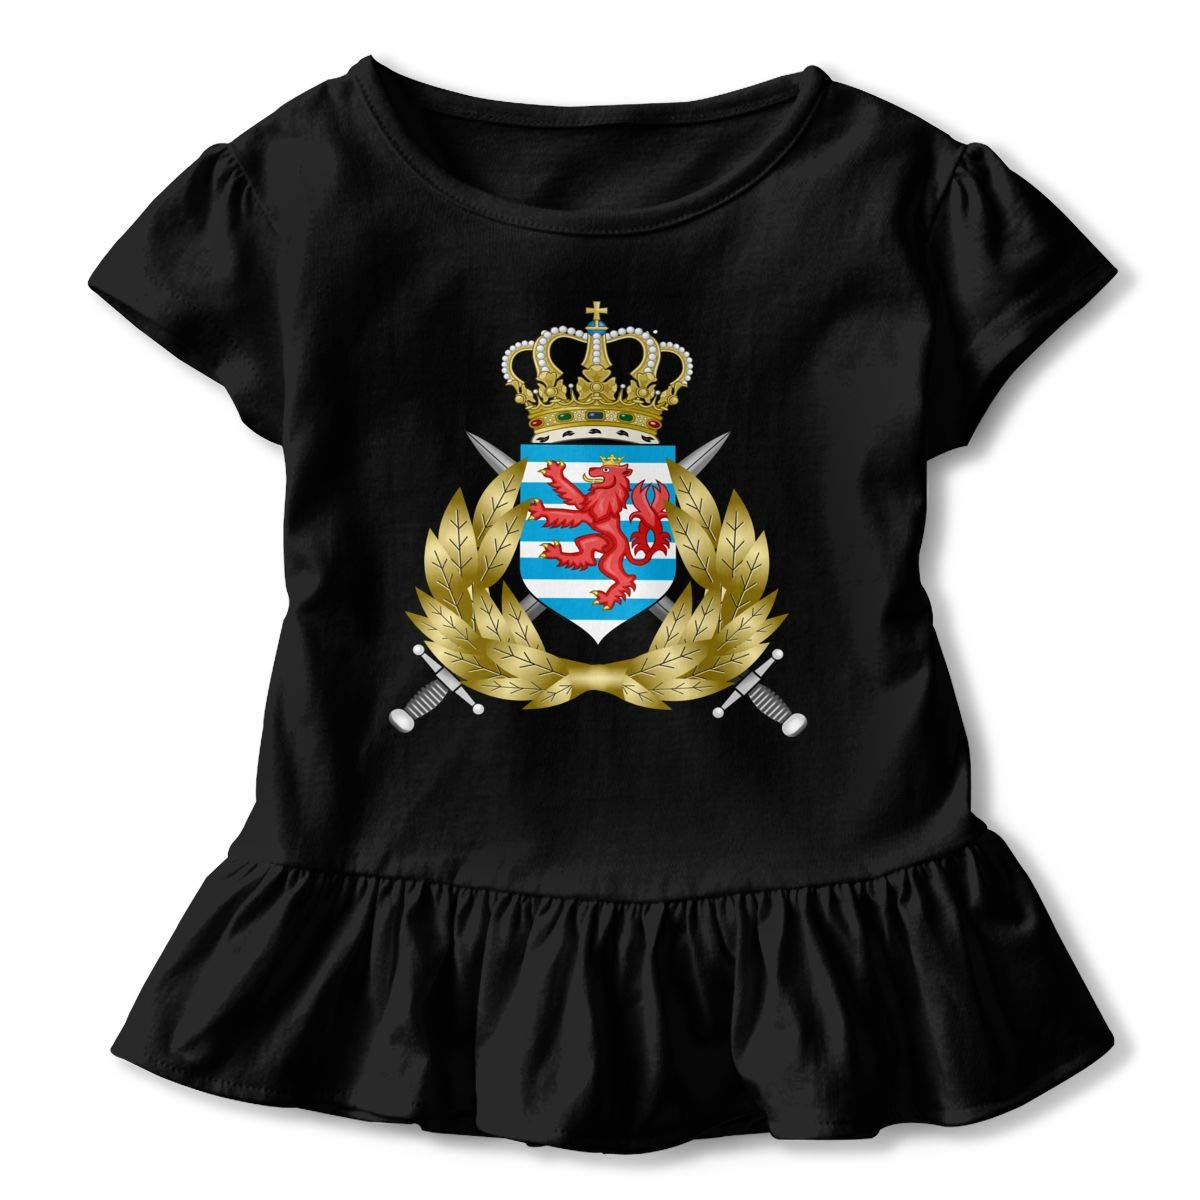 JVNSS Luxembourg Army Shirt Comfort Baby Girl Flounced T Shirts Clothes for 2-6T Kids Girls